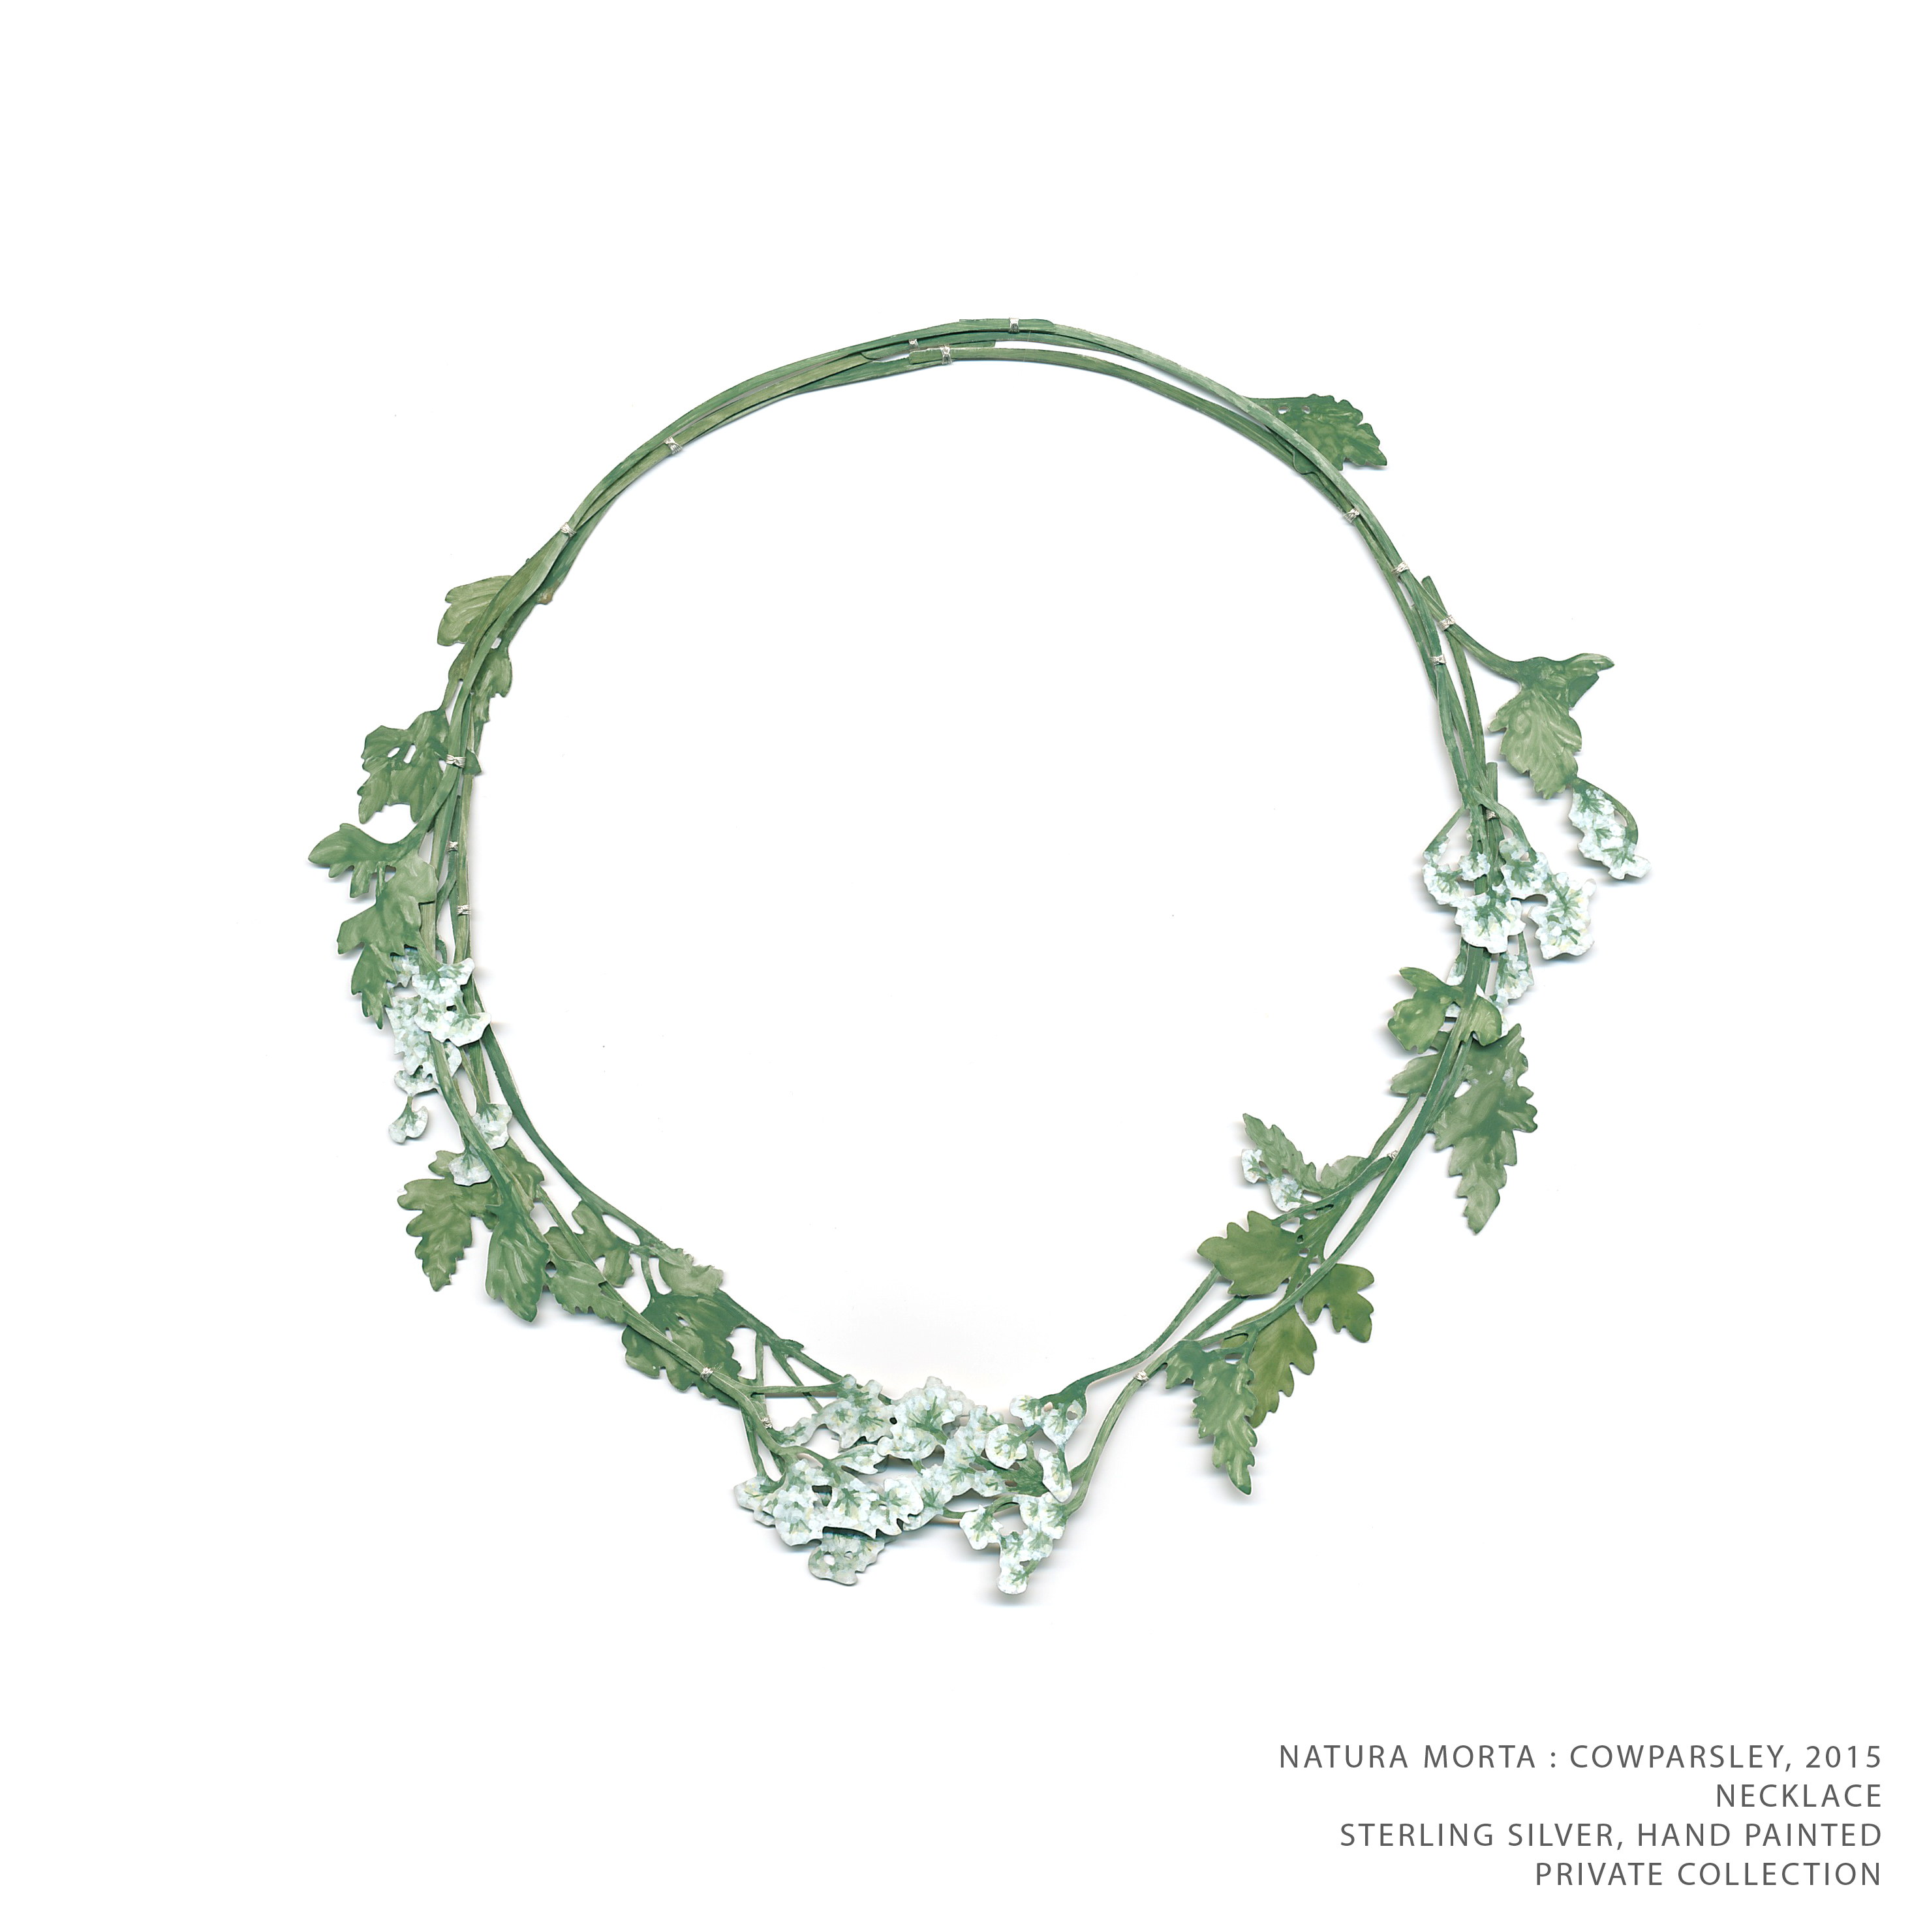 Natura Morta Cowparsley Necklace TEXT